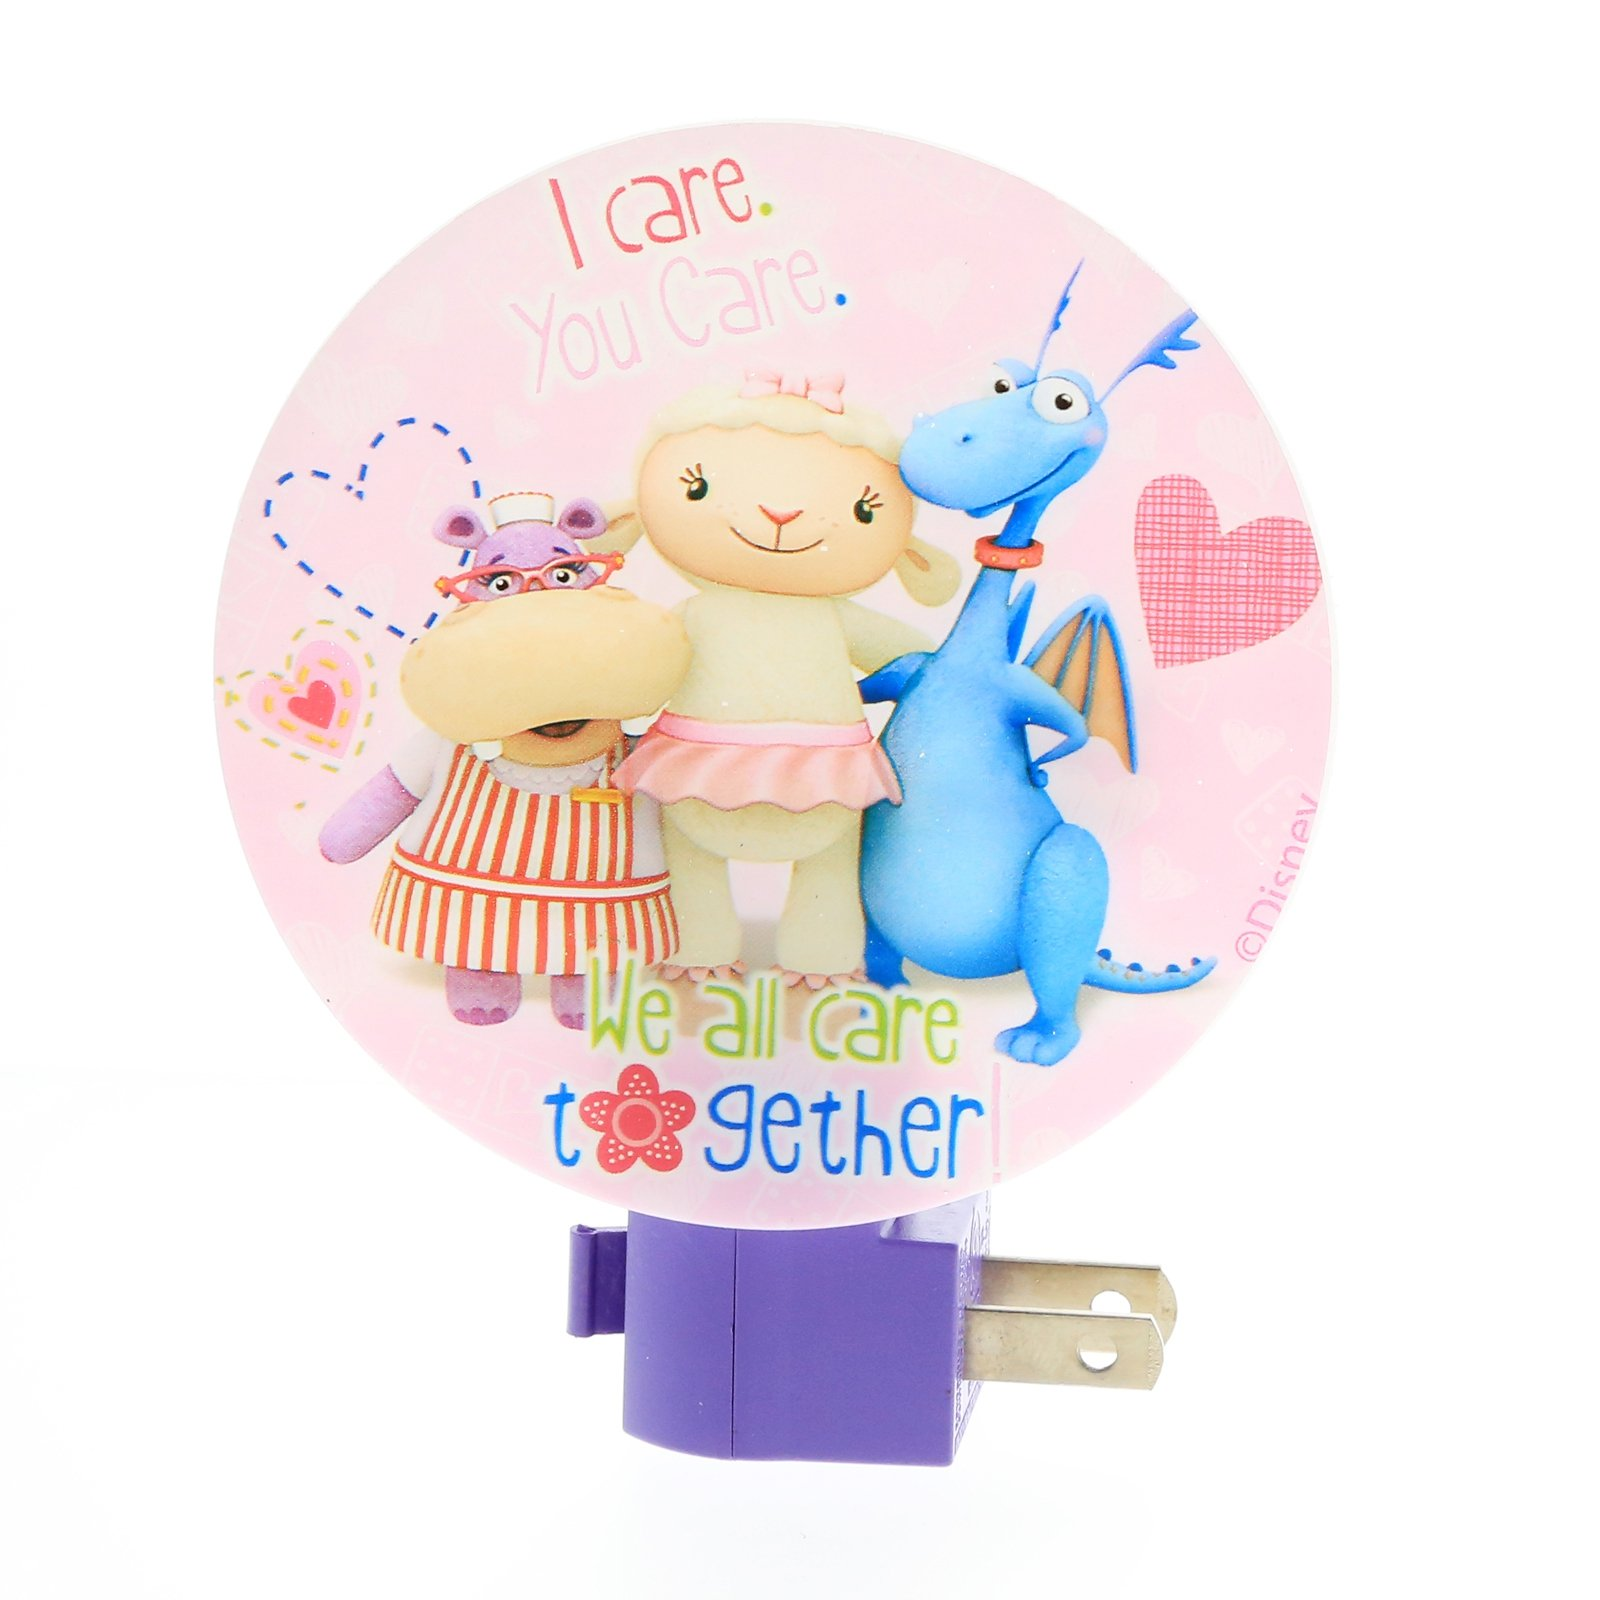 Disney Doc McStuffins Girls Night Light Kids Bedroom Home Decor - Pink